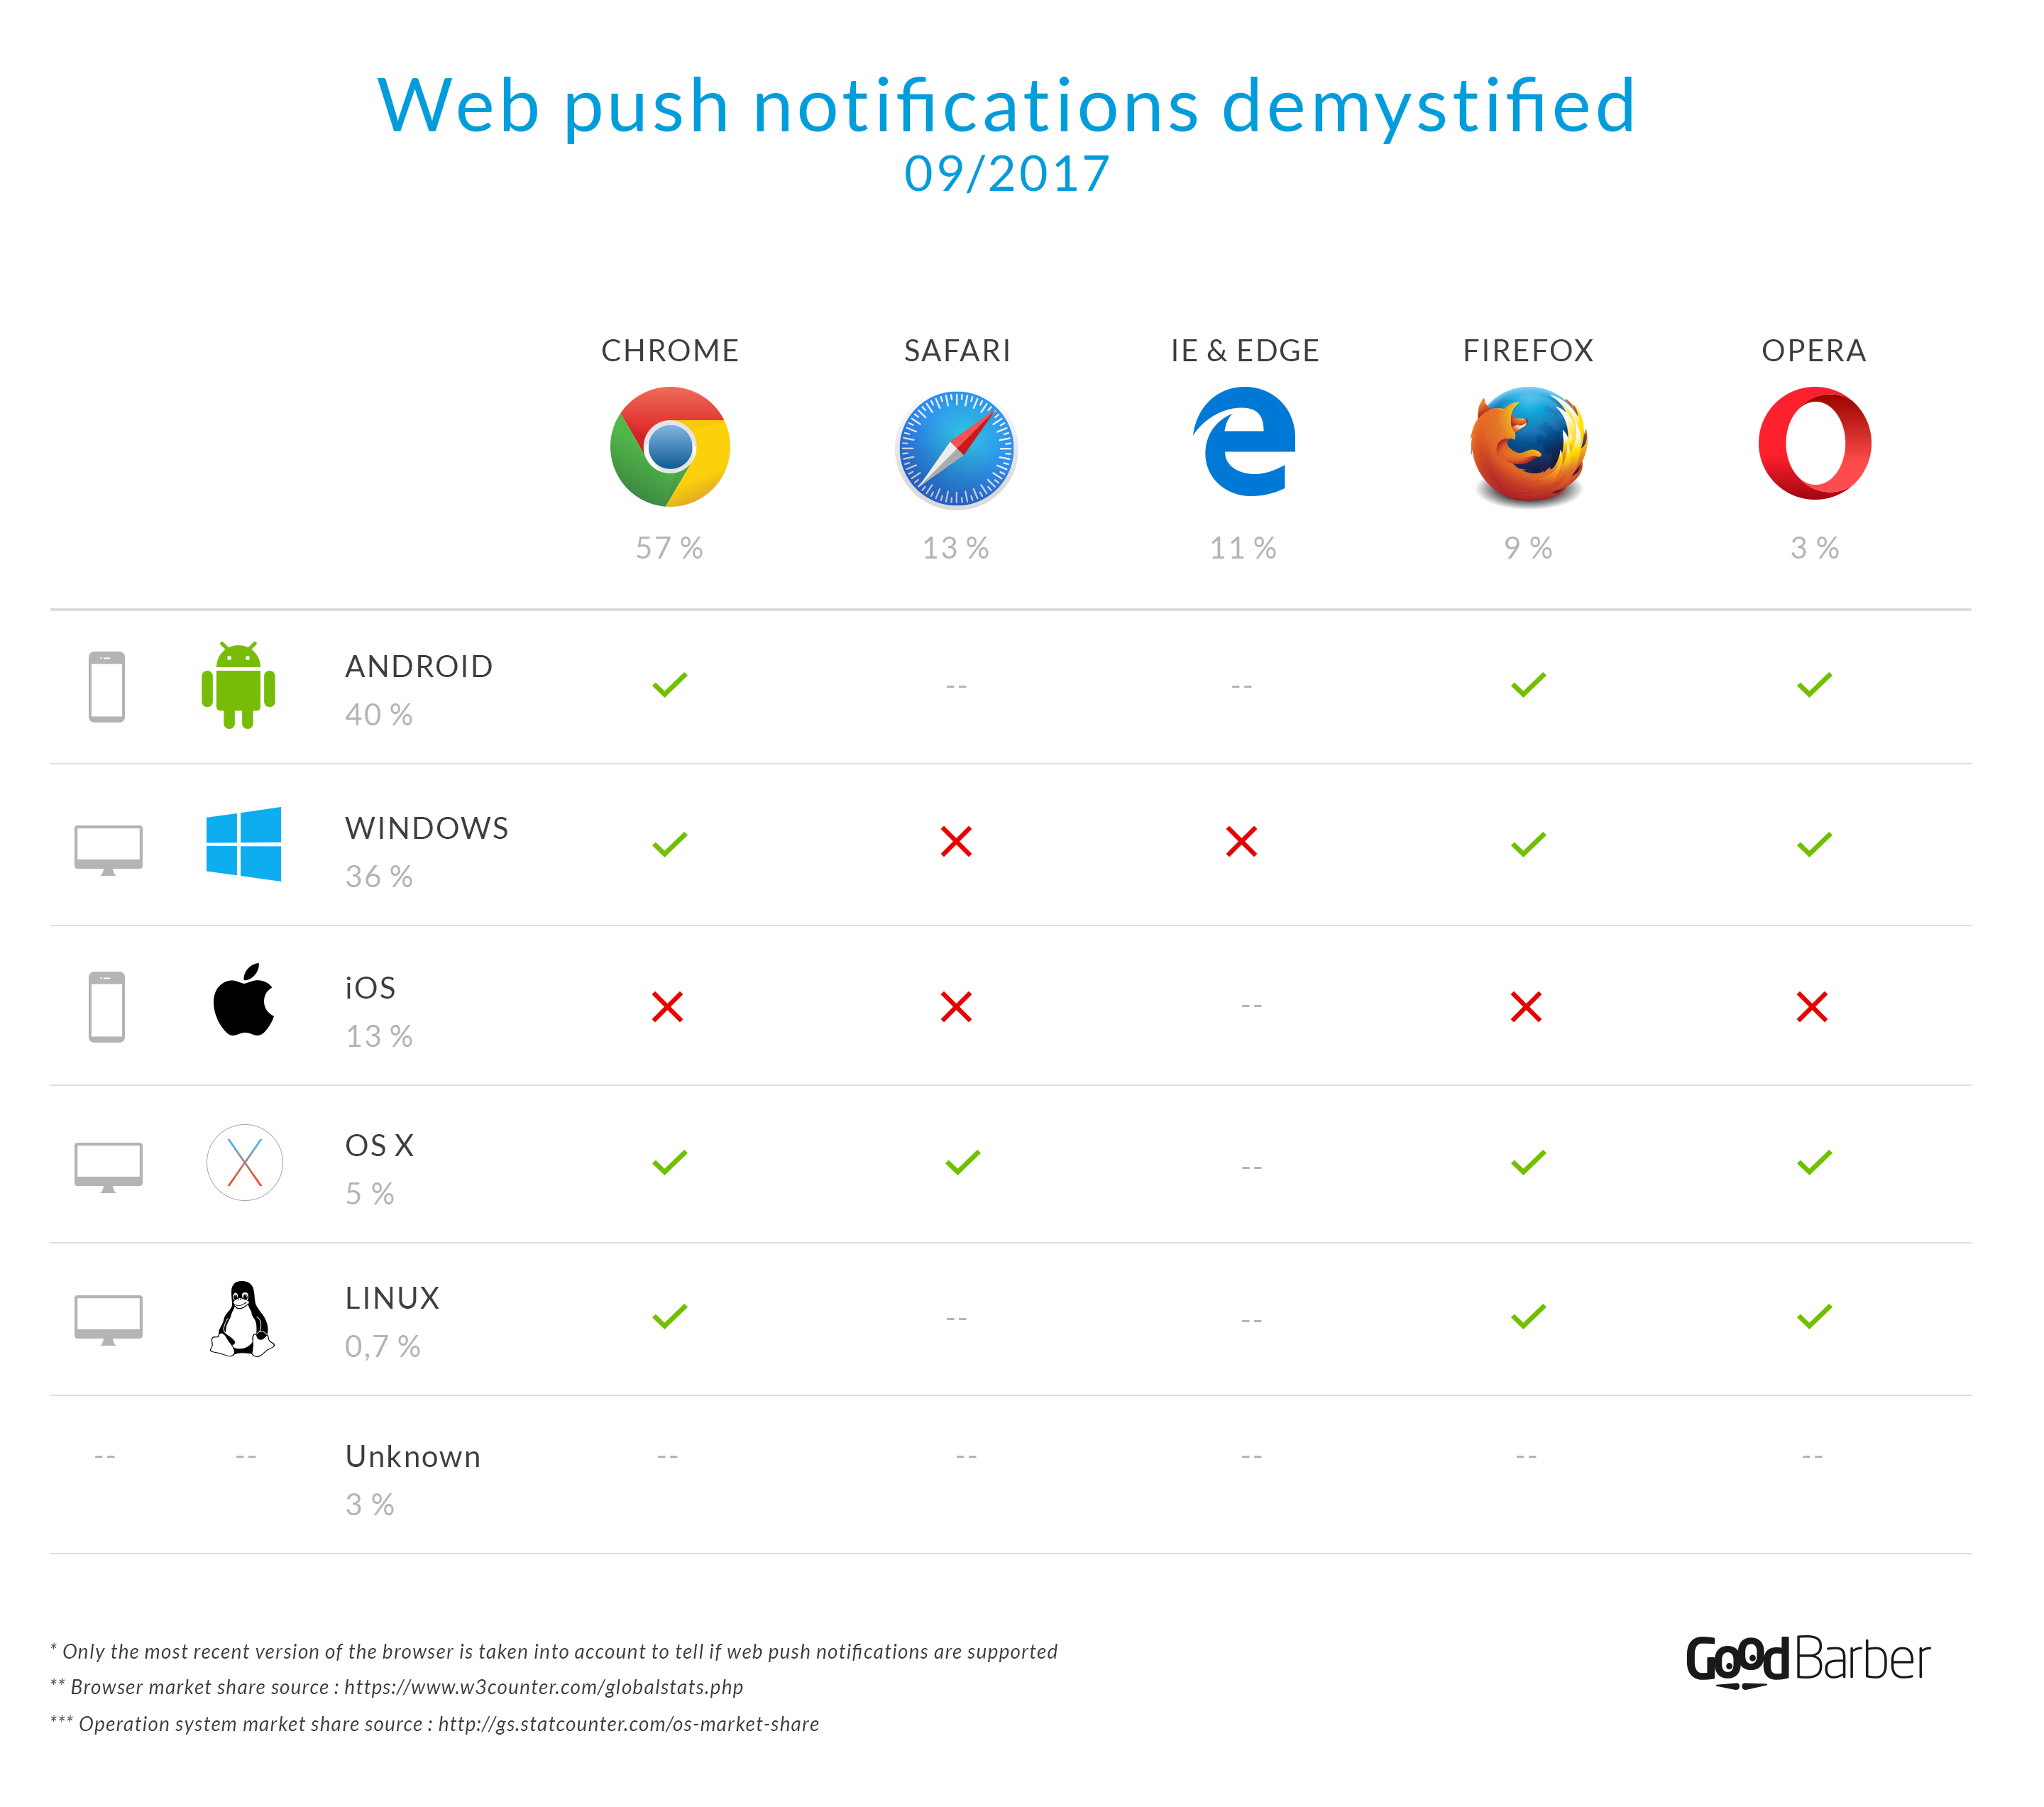 Web Push Notifications (demystified) | GoodBarber